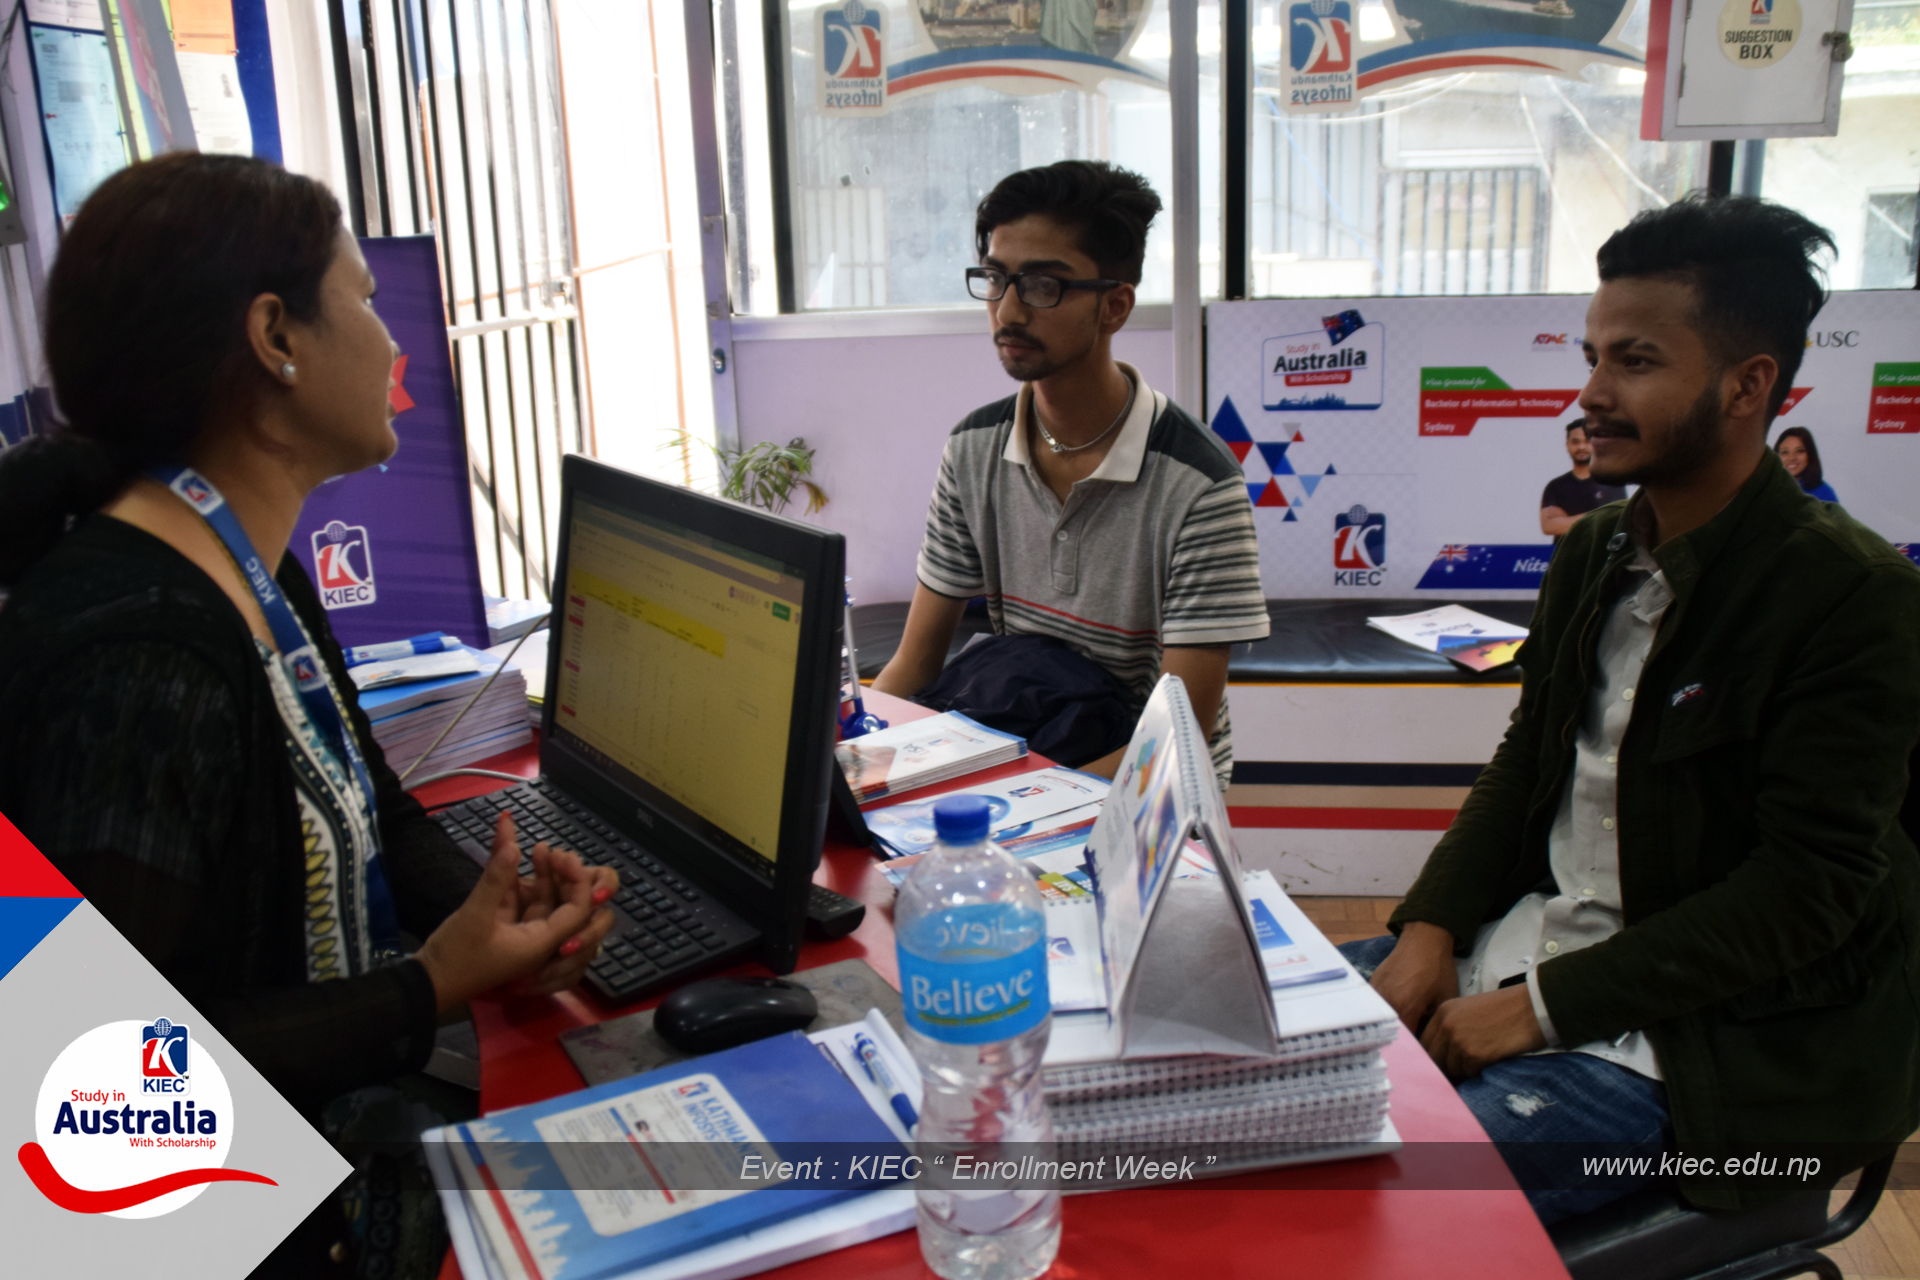 KIEC Counsellor Bhuwan Bhandari counselling with Visitors